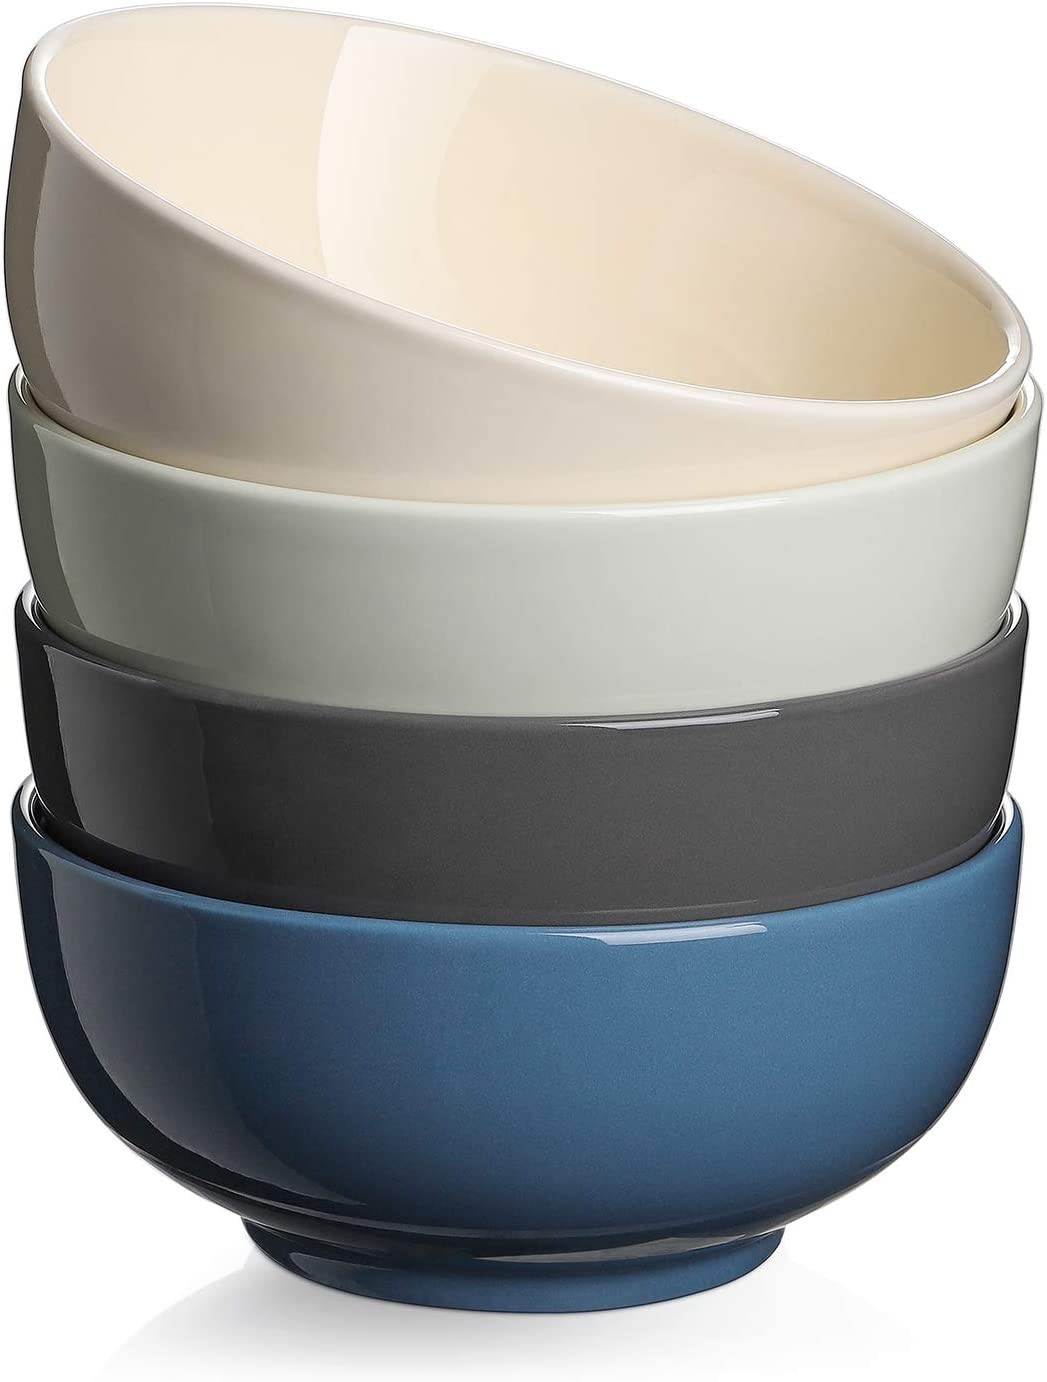 DOWAN Soup Bowls - 22 Oz Porcelain Large Soup Bowl, Cereal Bowl, Dishwasher and Microwave Safe Bowl Set of 4, Multifunction Colorful Kitchen Bowls for Soup, Cereal, Salad, Pasta, Cool Assorted Color